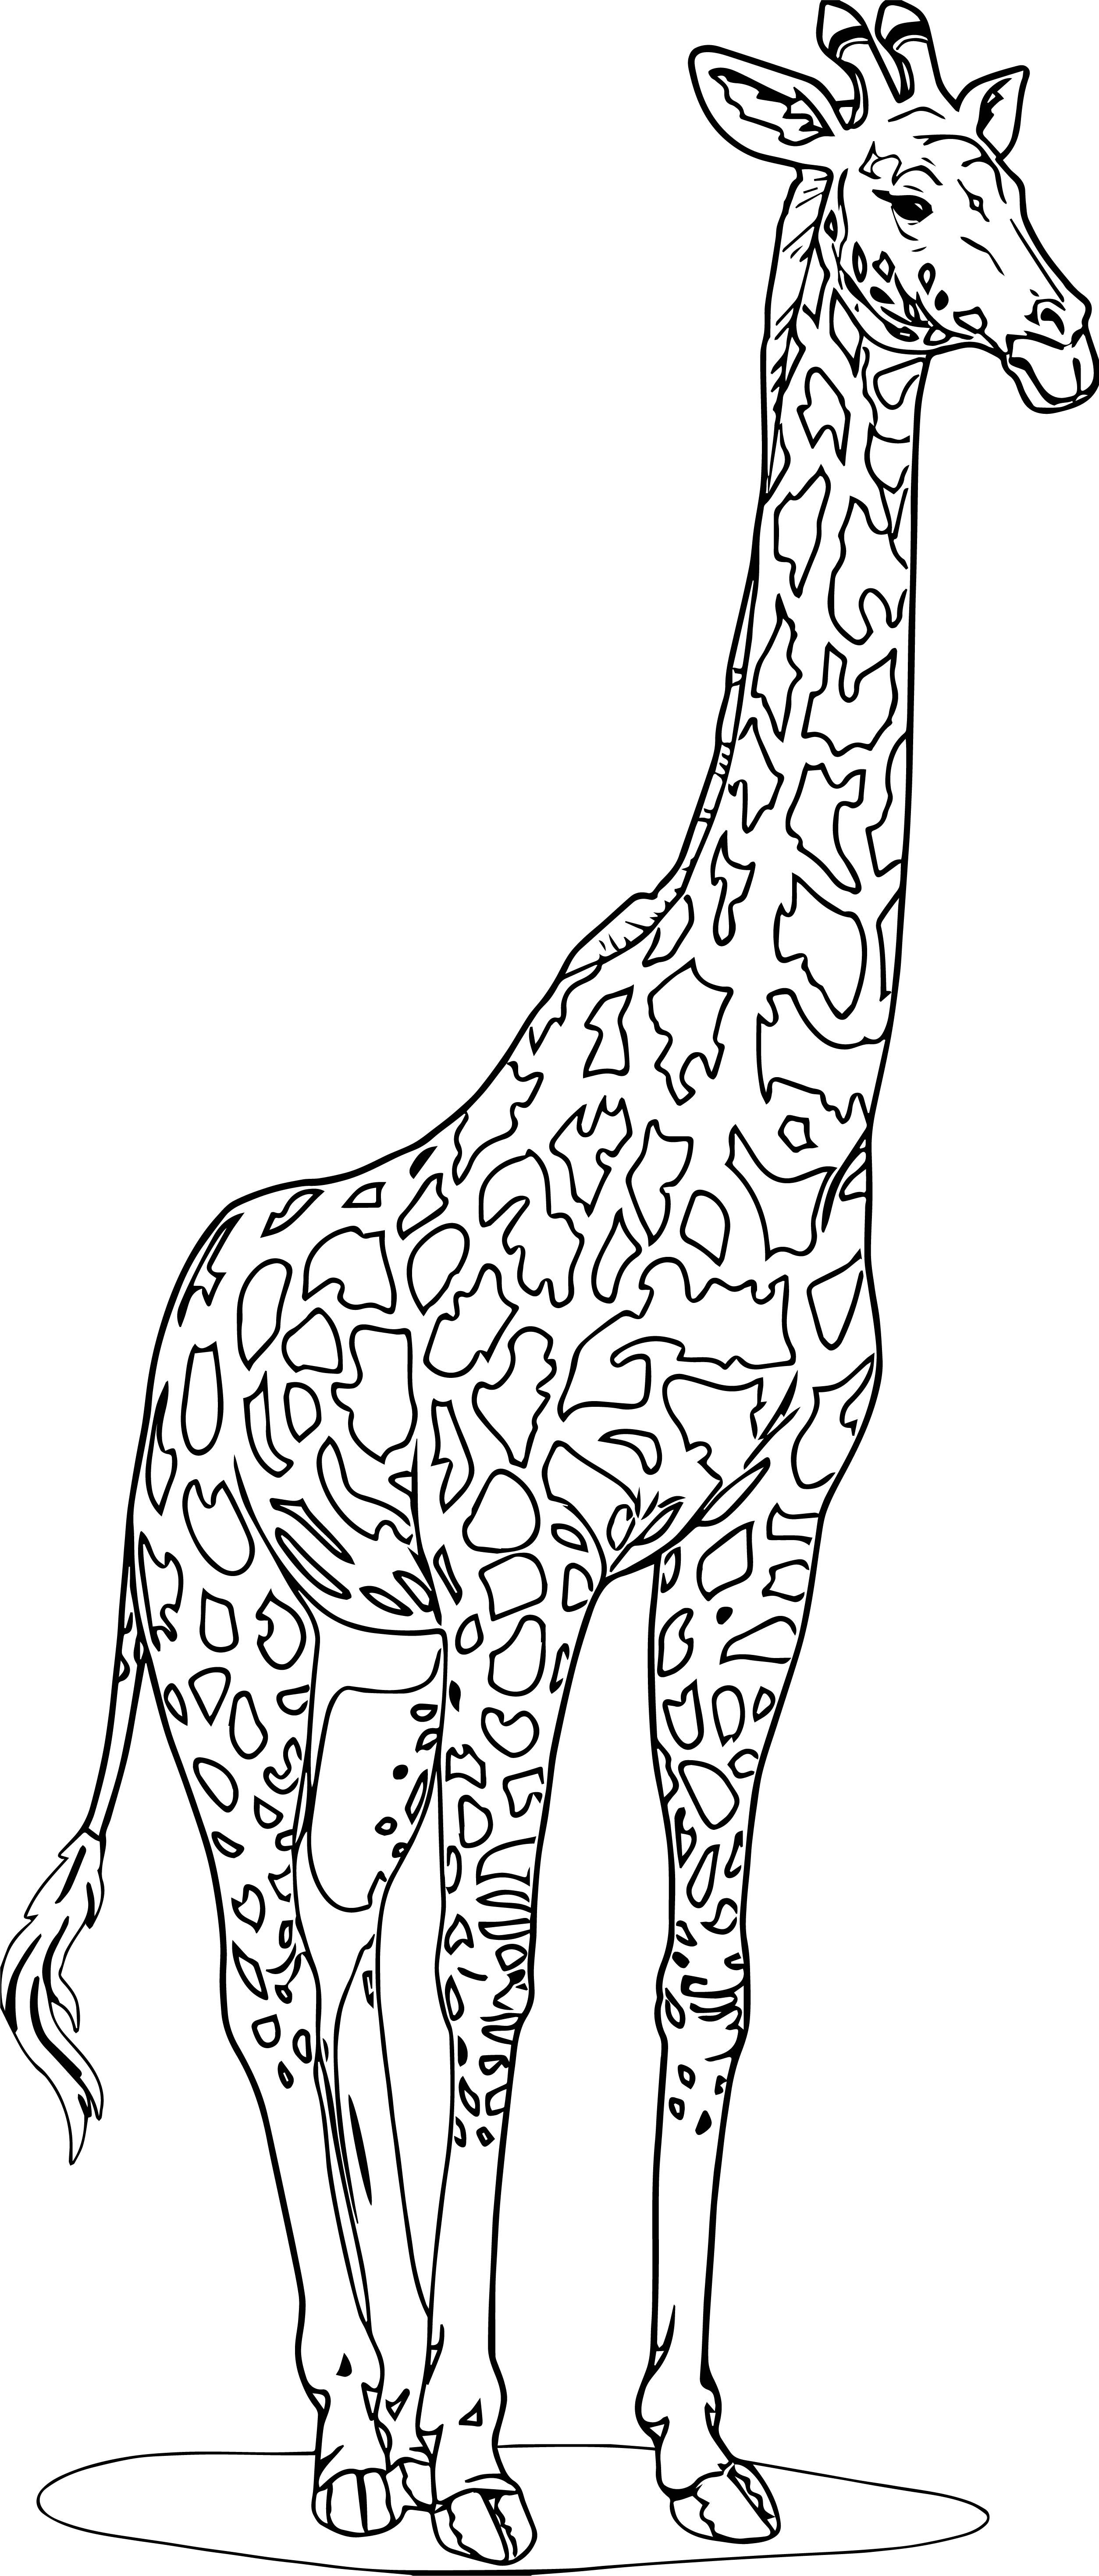 Free Easy To Print Baby Animal Coloring Pages Giraffe Coloring Pages Animal Coloring Pages Easy Animal Drawings